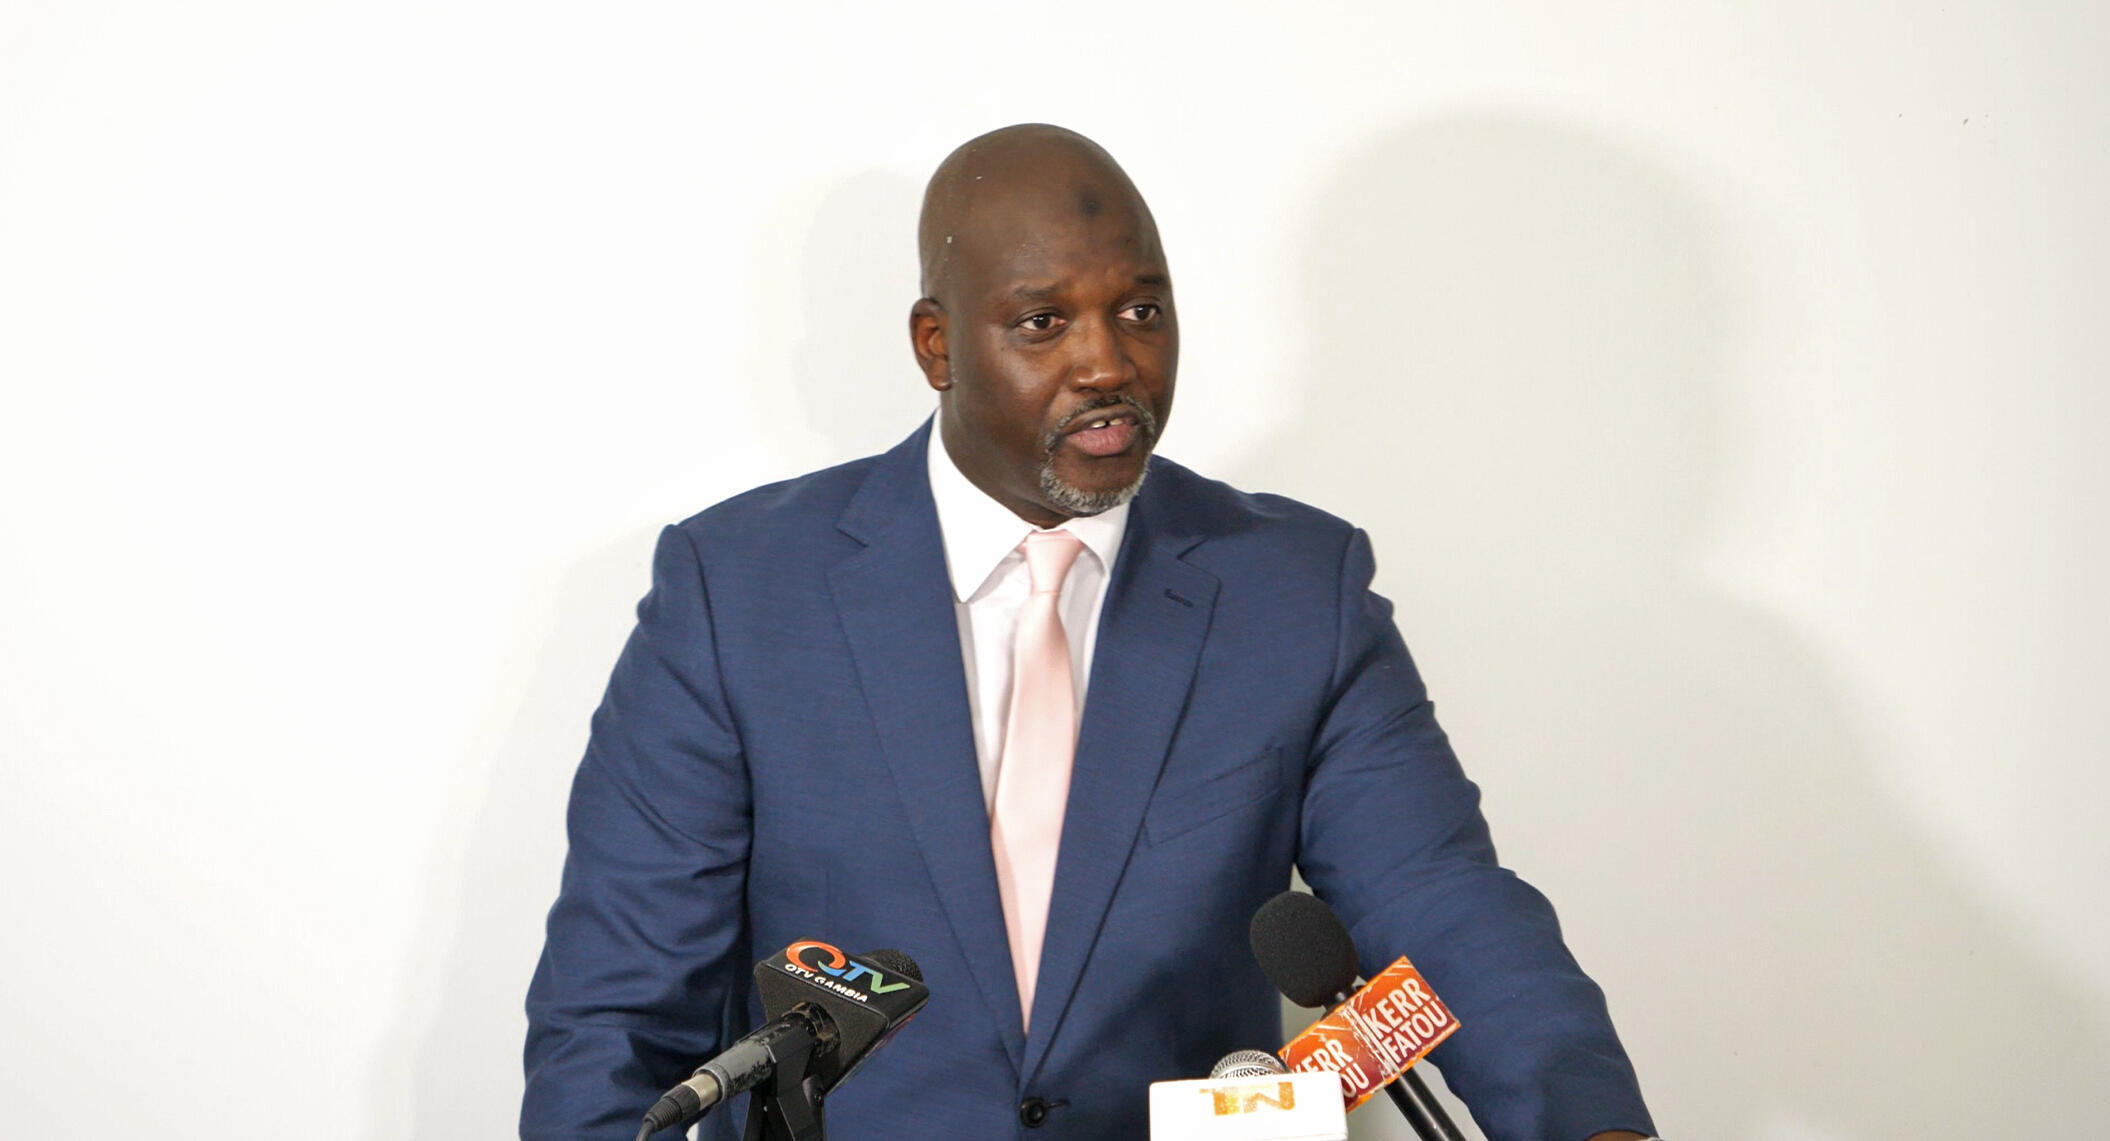 Justice minister and Attorney-General of The Gambia, Abubacarr Tambadou, in the capital Banjul.